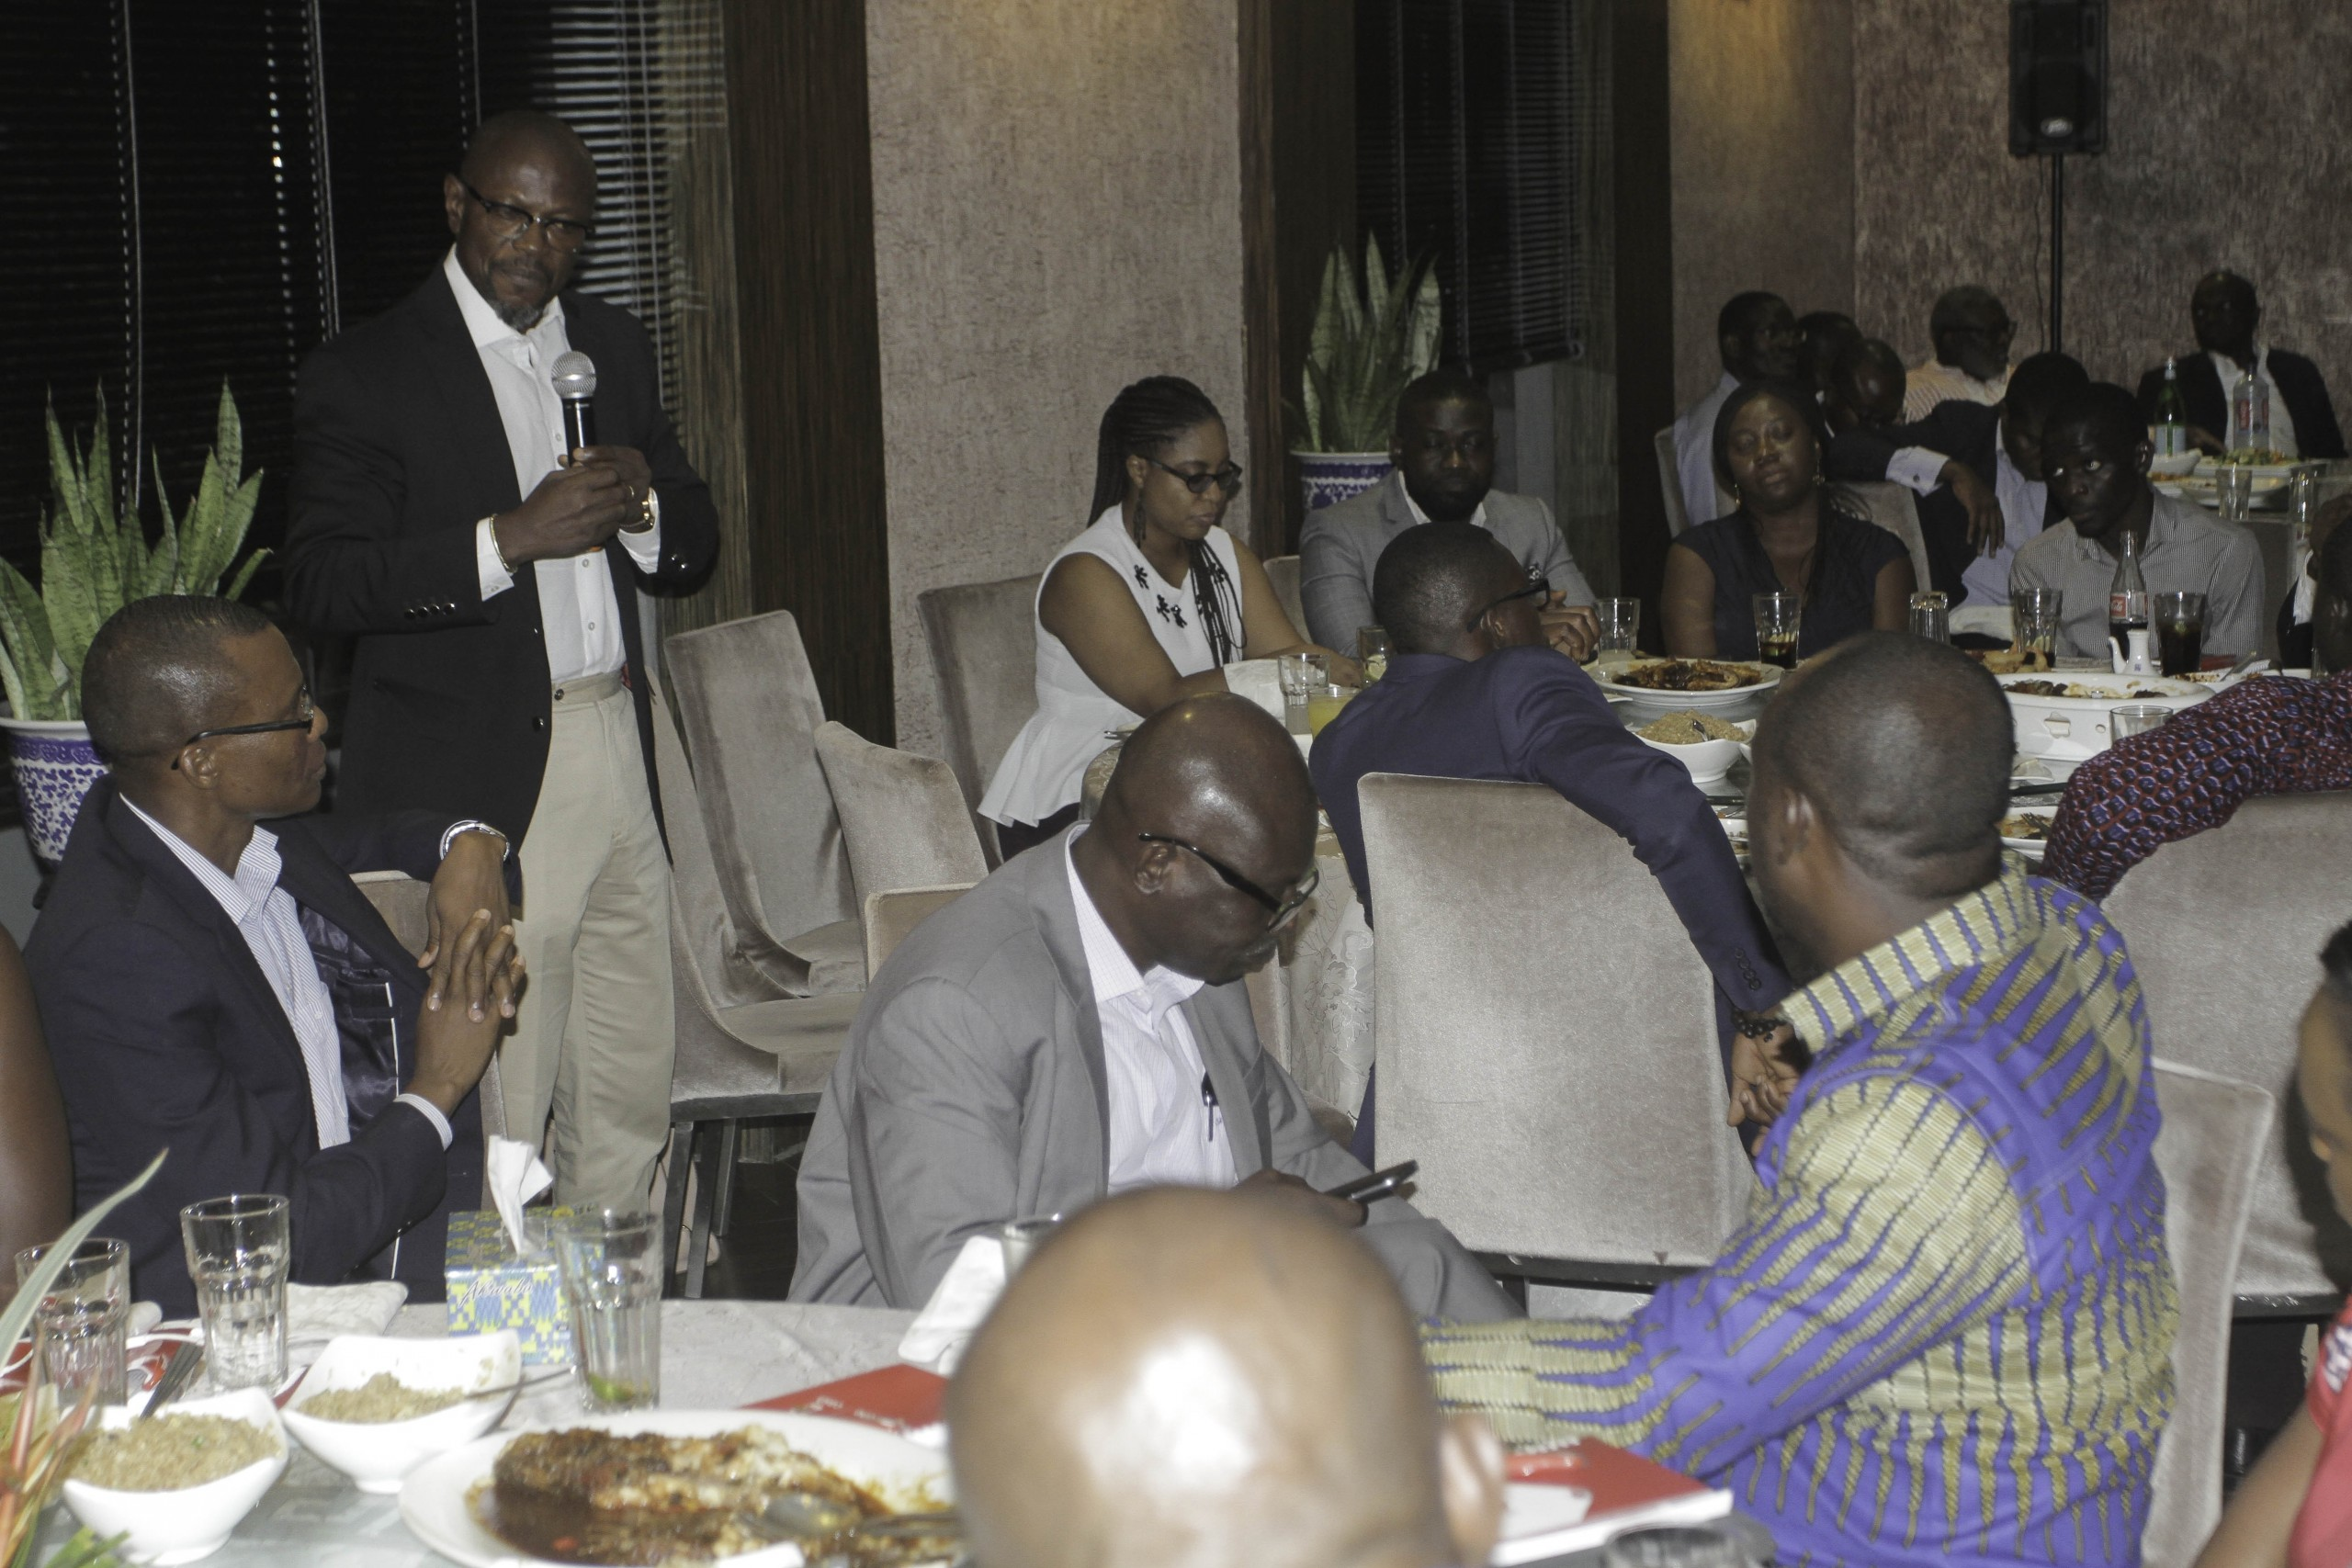 Vodafone CEO expresses concern over ICH implementation in Ghana